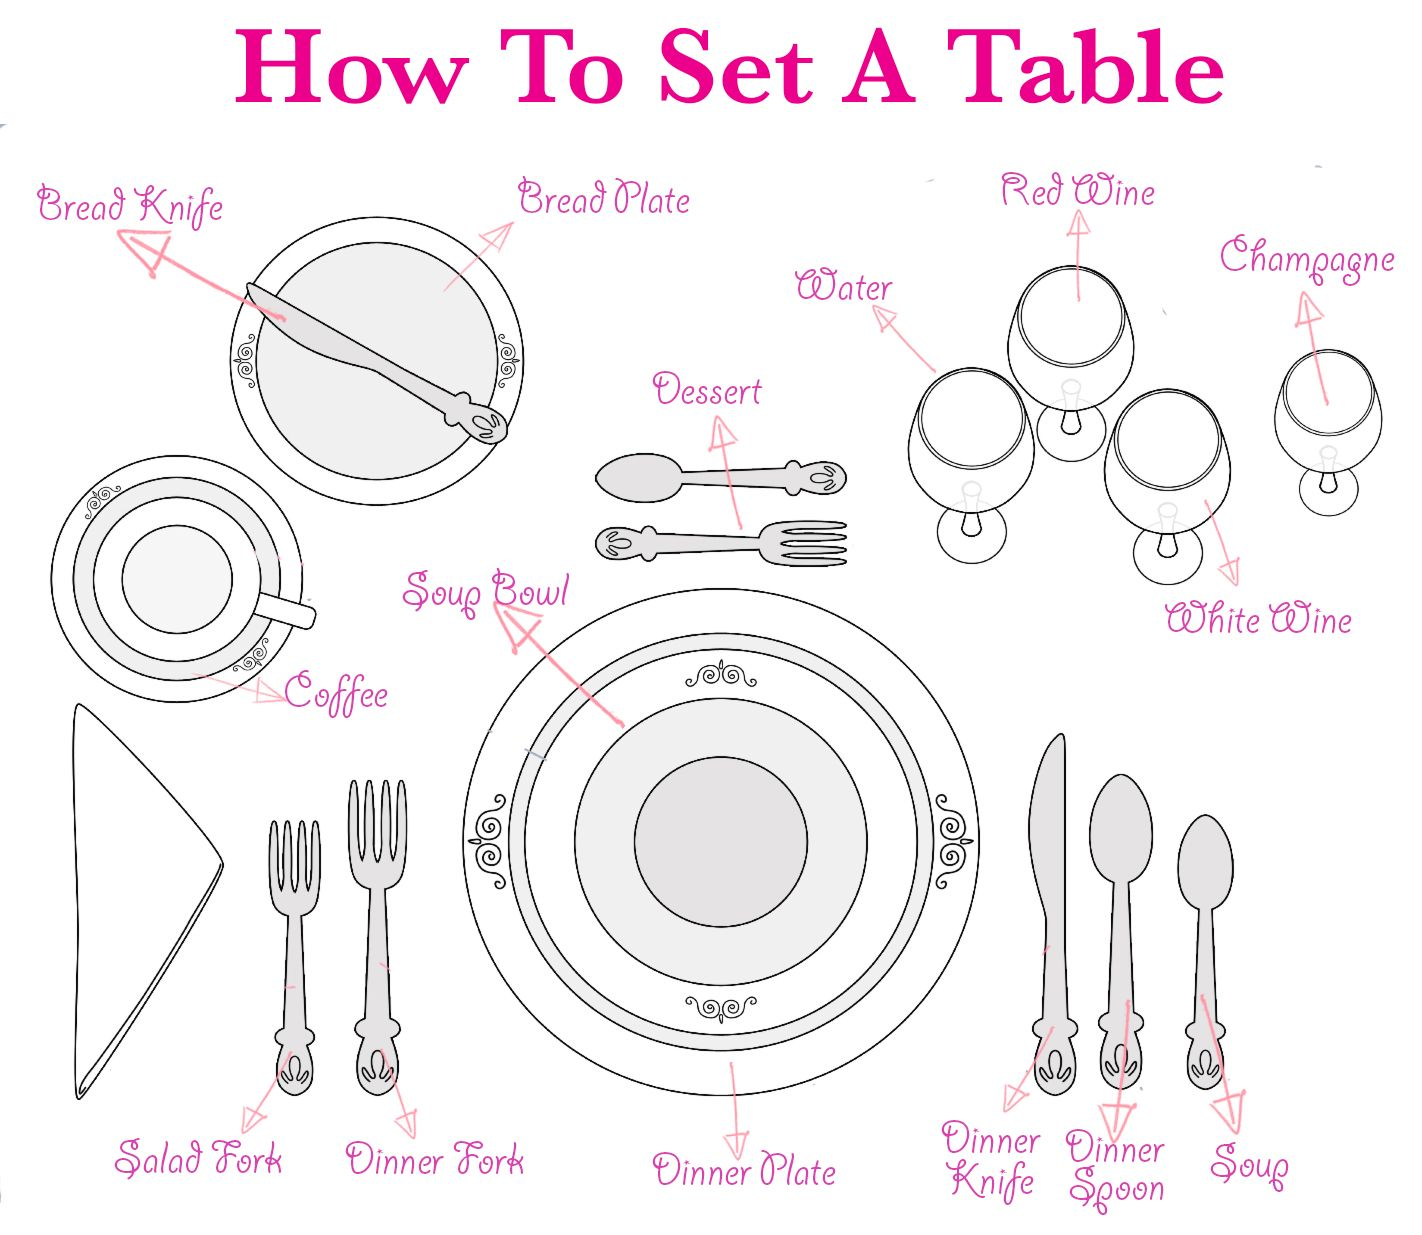 10 gorgeous table setting ideas how to set your table table 10 gorgeous table setting ideas how to set your table ccuart Images